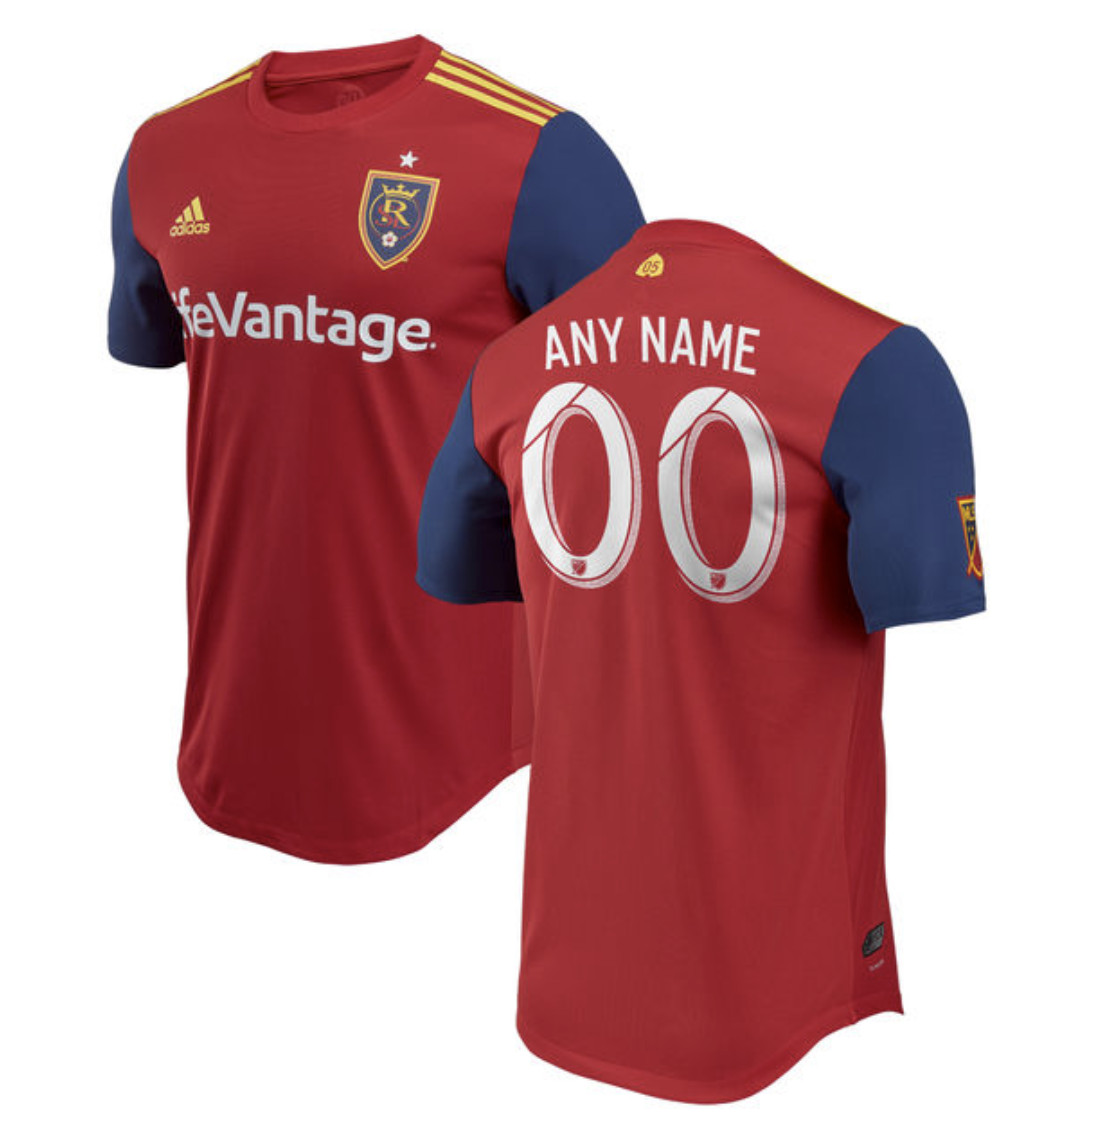 64663e1c9c0 2018 MLS Kits  A Complete Ranking - The Mane Land